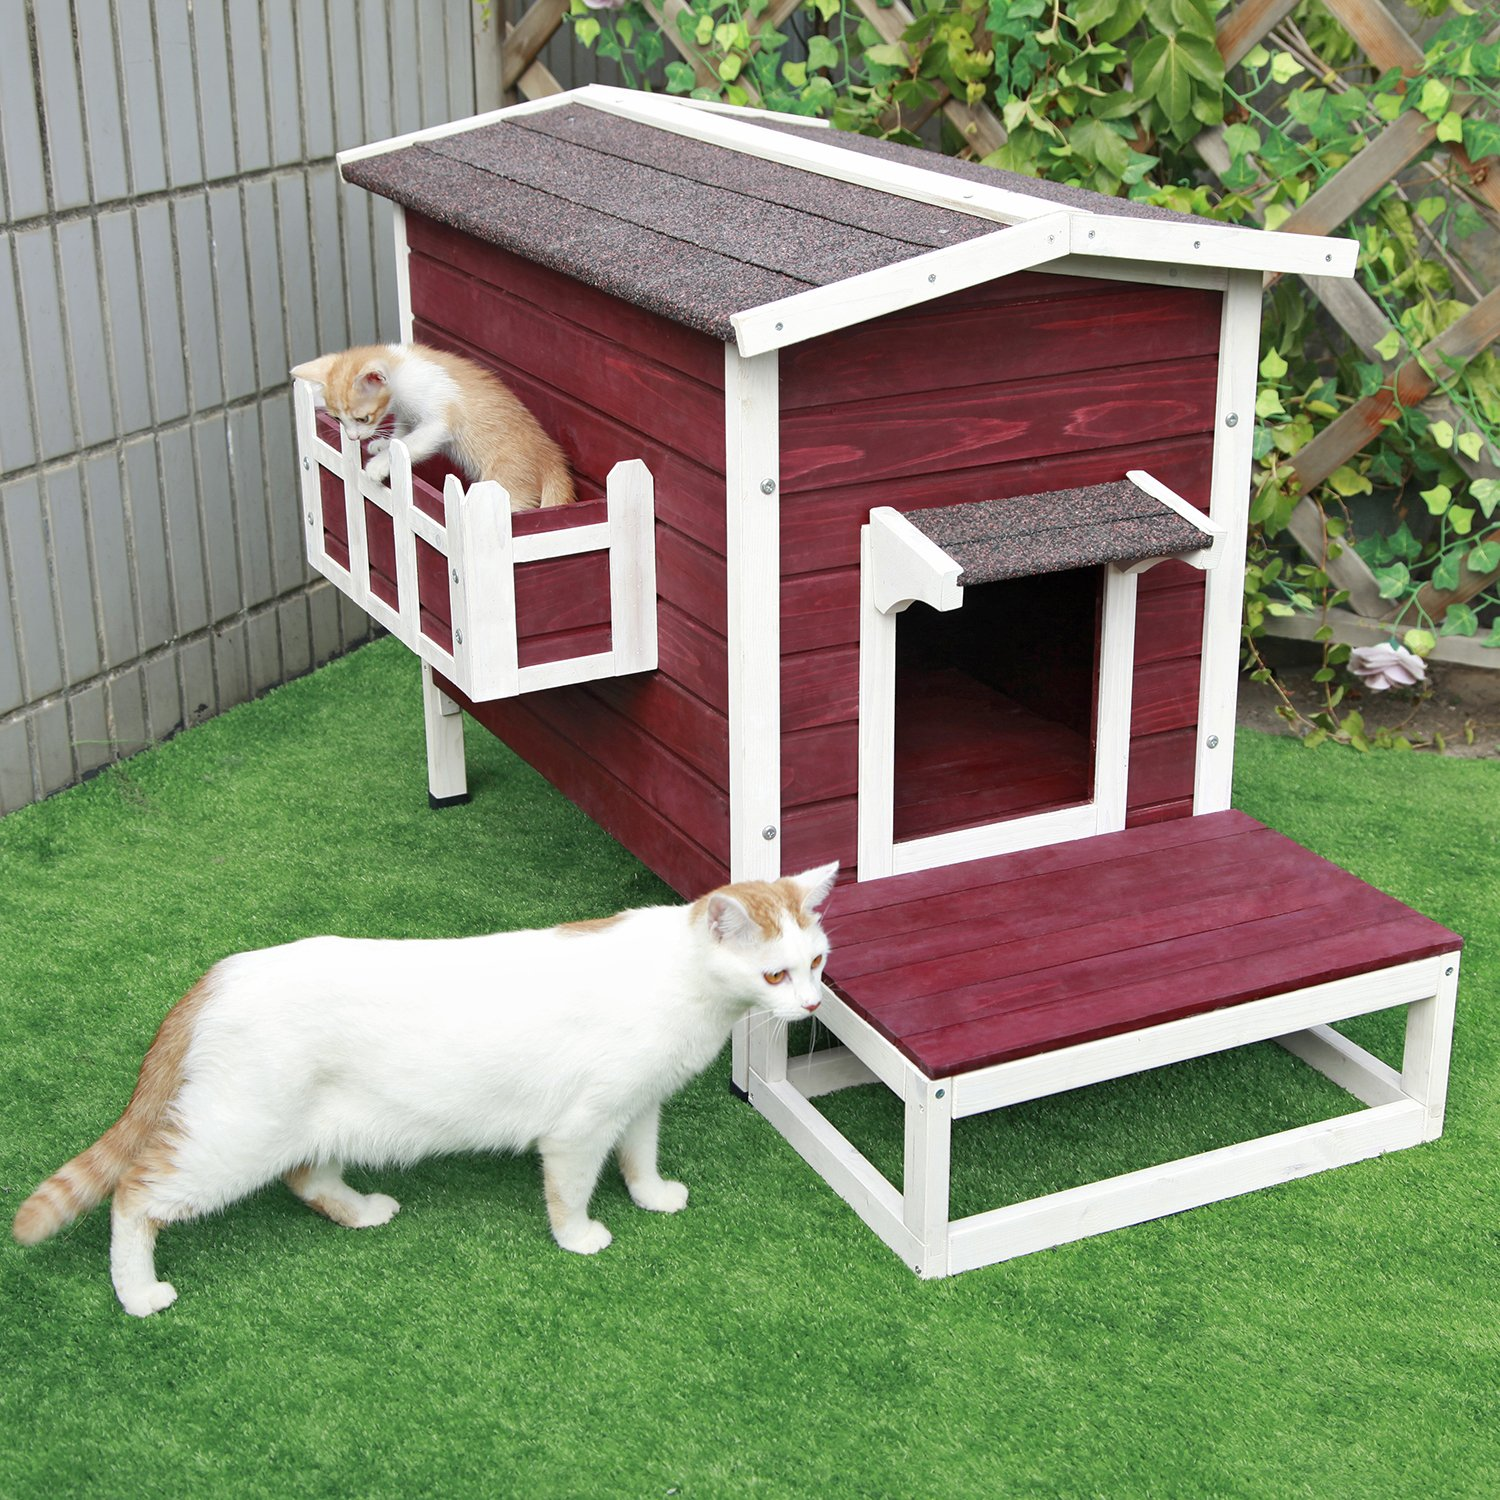 Petsfit Outdoor Cat Shelter LargeCat House / Condo With Escape Door Small Out.